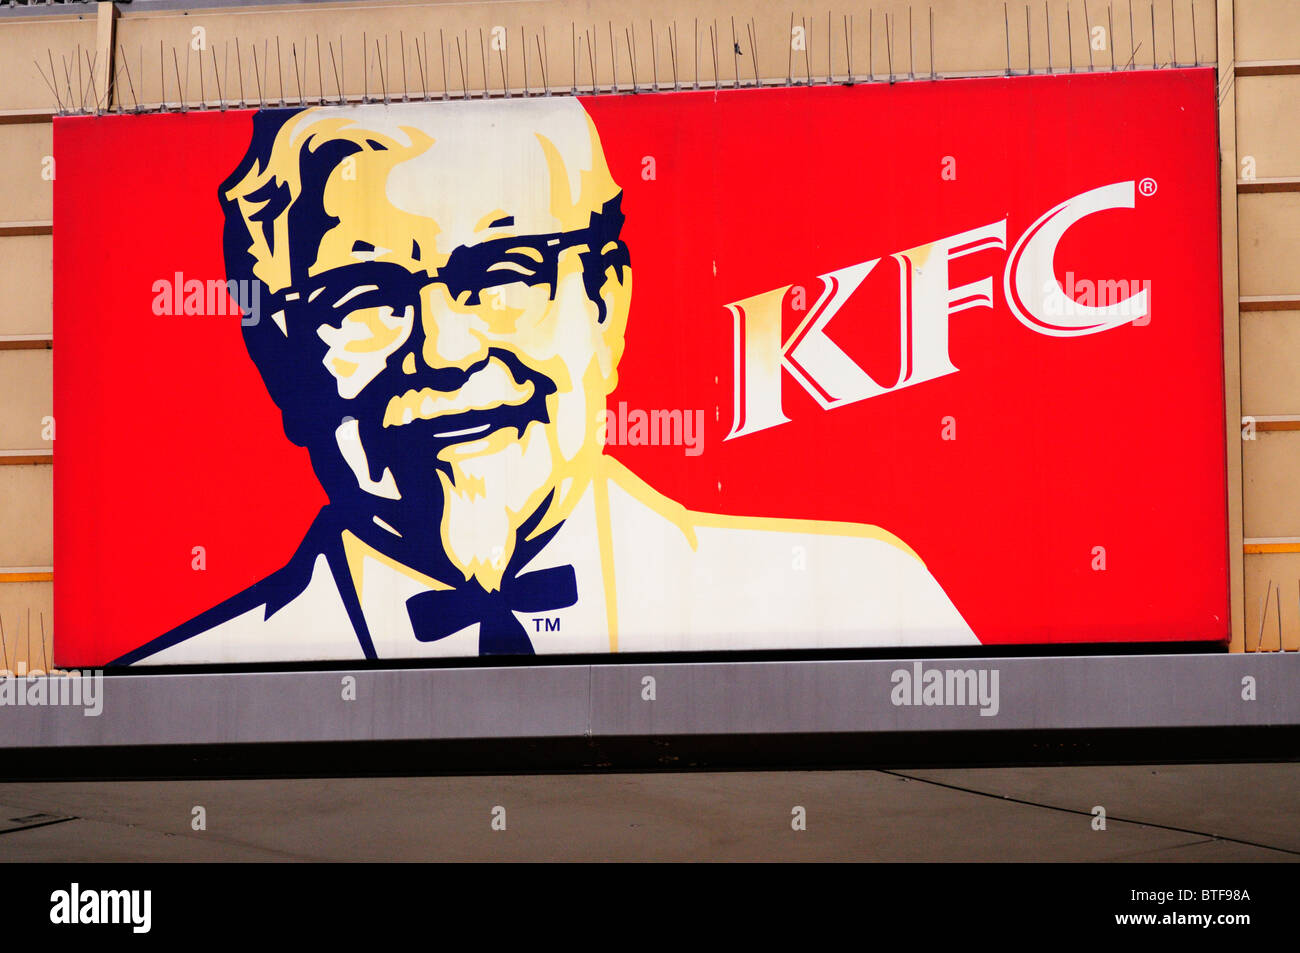 Kentucky Fried Chicken KFC fast food restaurant sign symbol, London, England, UK - Stock Image